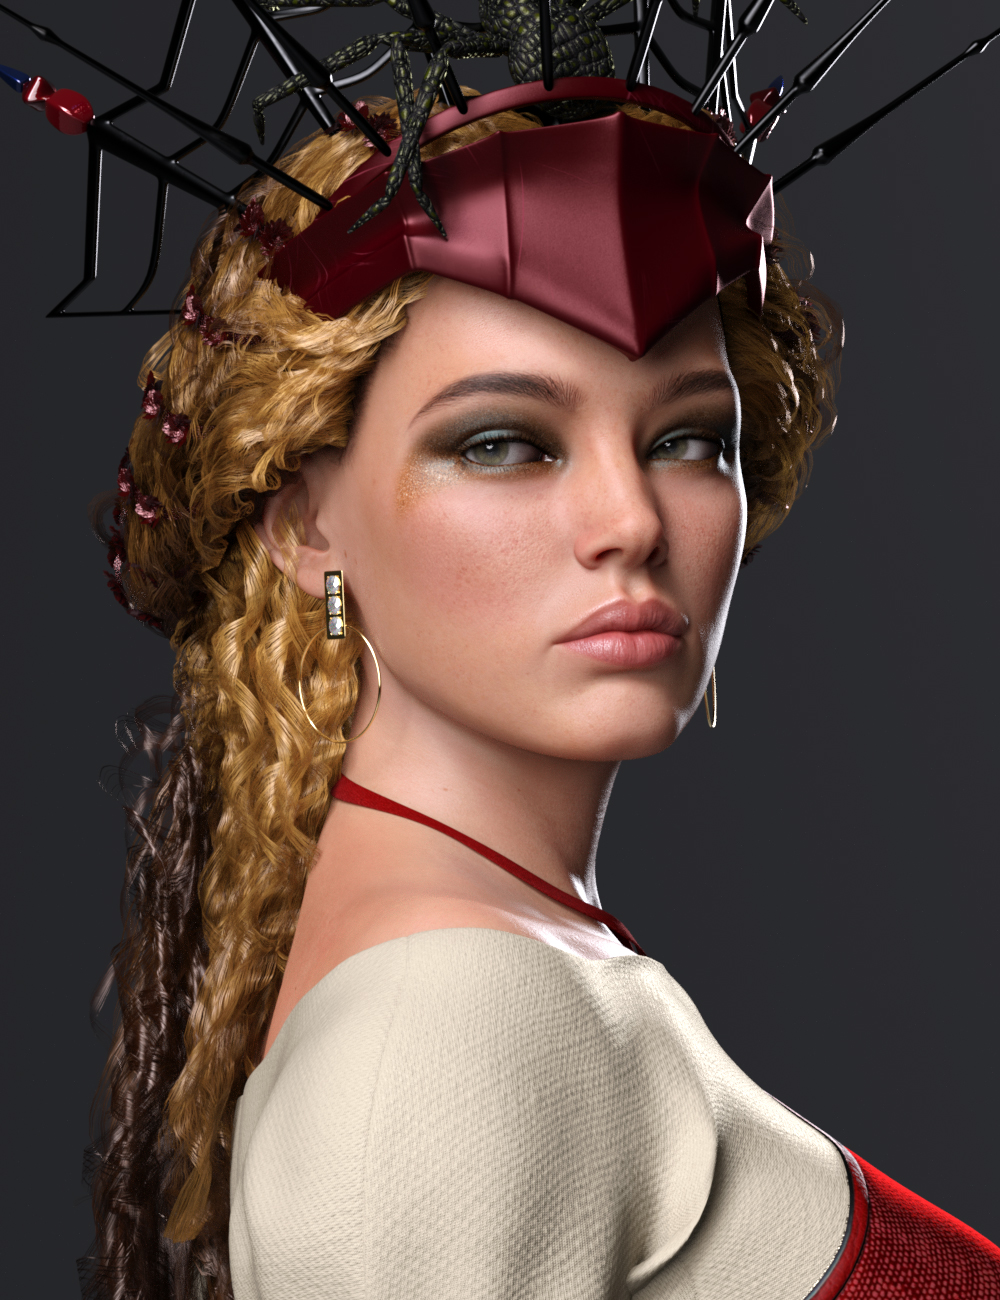 Lucia HD for Genesis 8.1 Female by: Mousso, 3D Models by Daz 3D